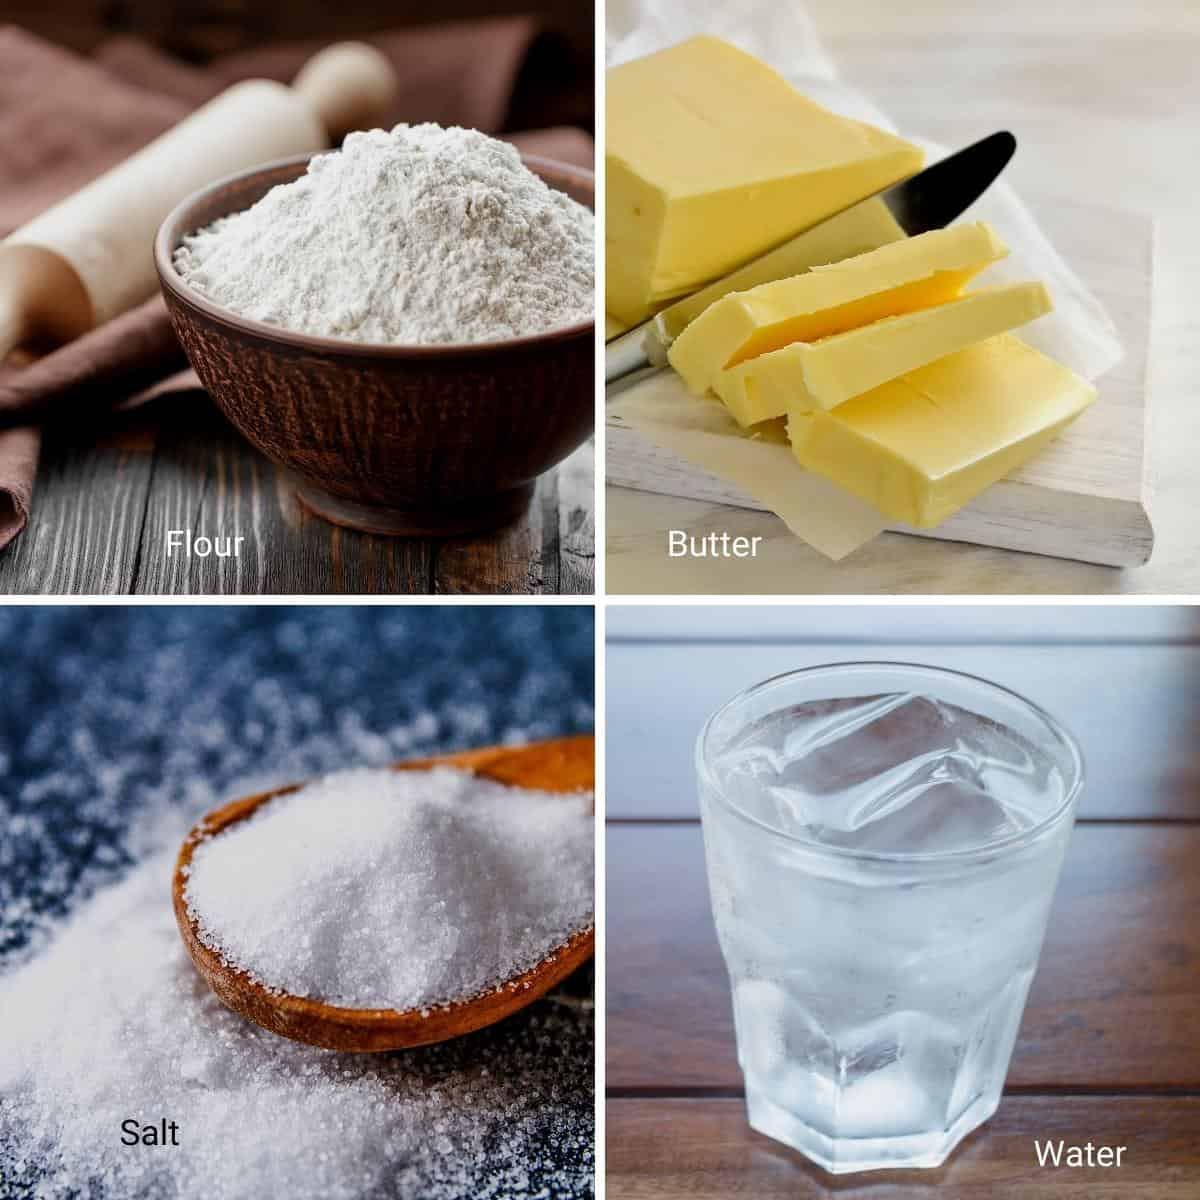 Ingredients for making a homemade crust for sweet and savory pies.